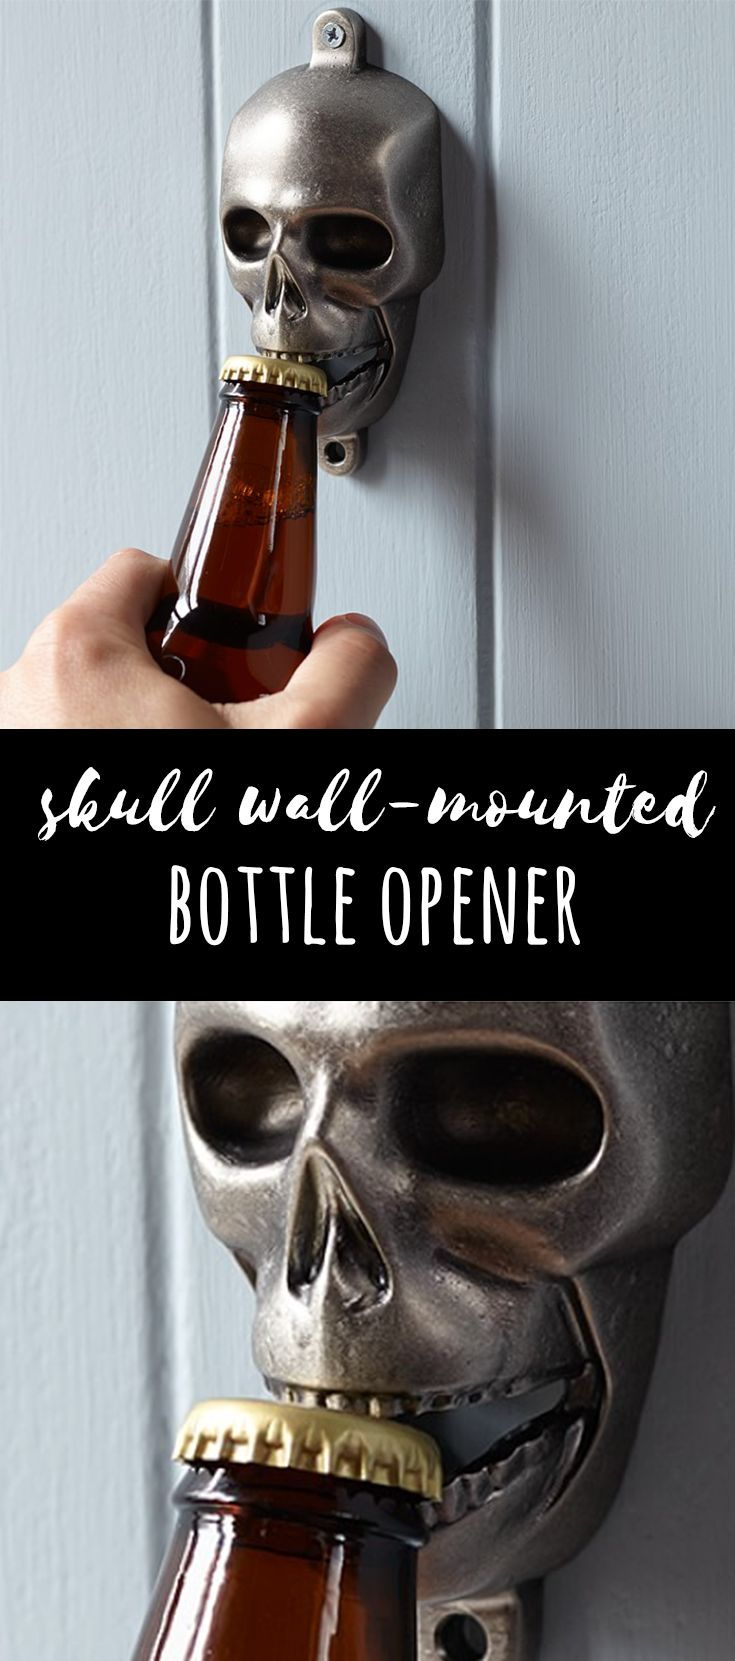 Awesome skull bottle opener! I need one of these in my kitchen! #skulldecor #gothicdecor #gothickitchen #halloweenideas #afflink